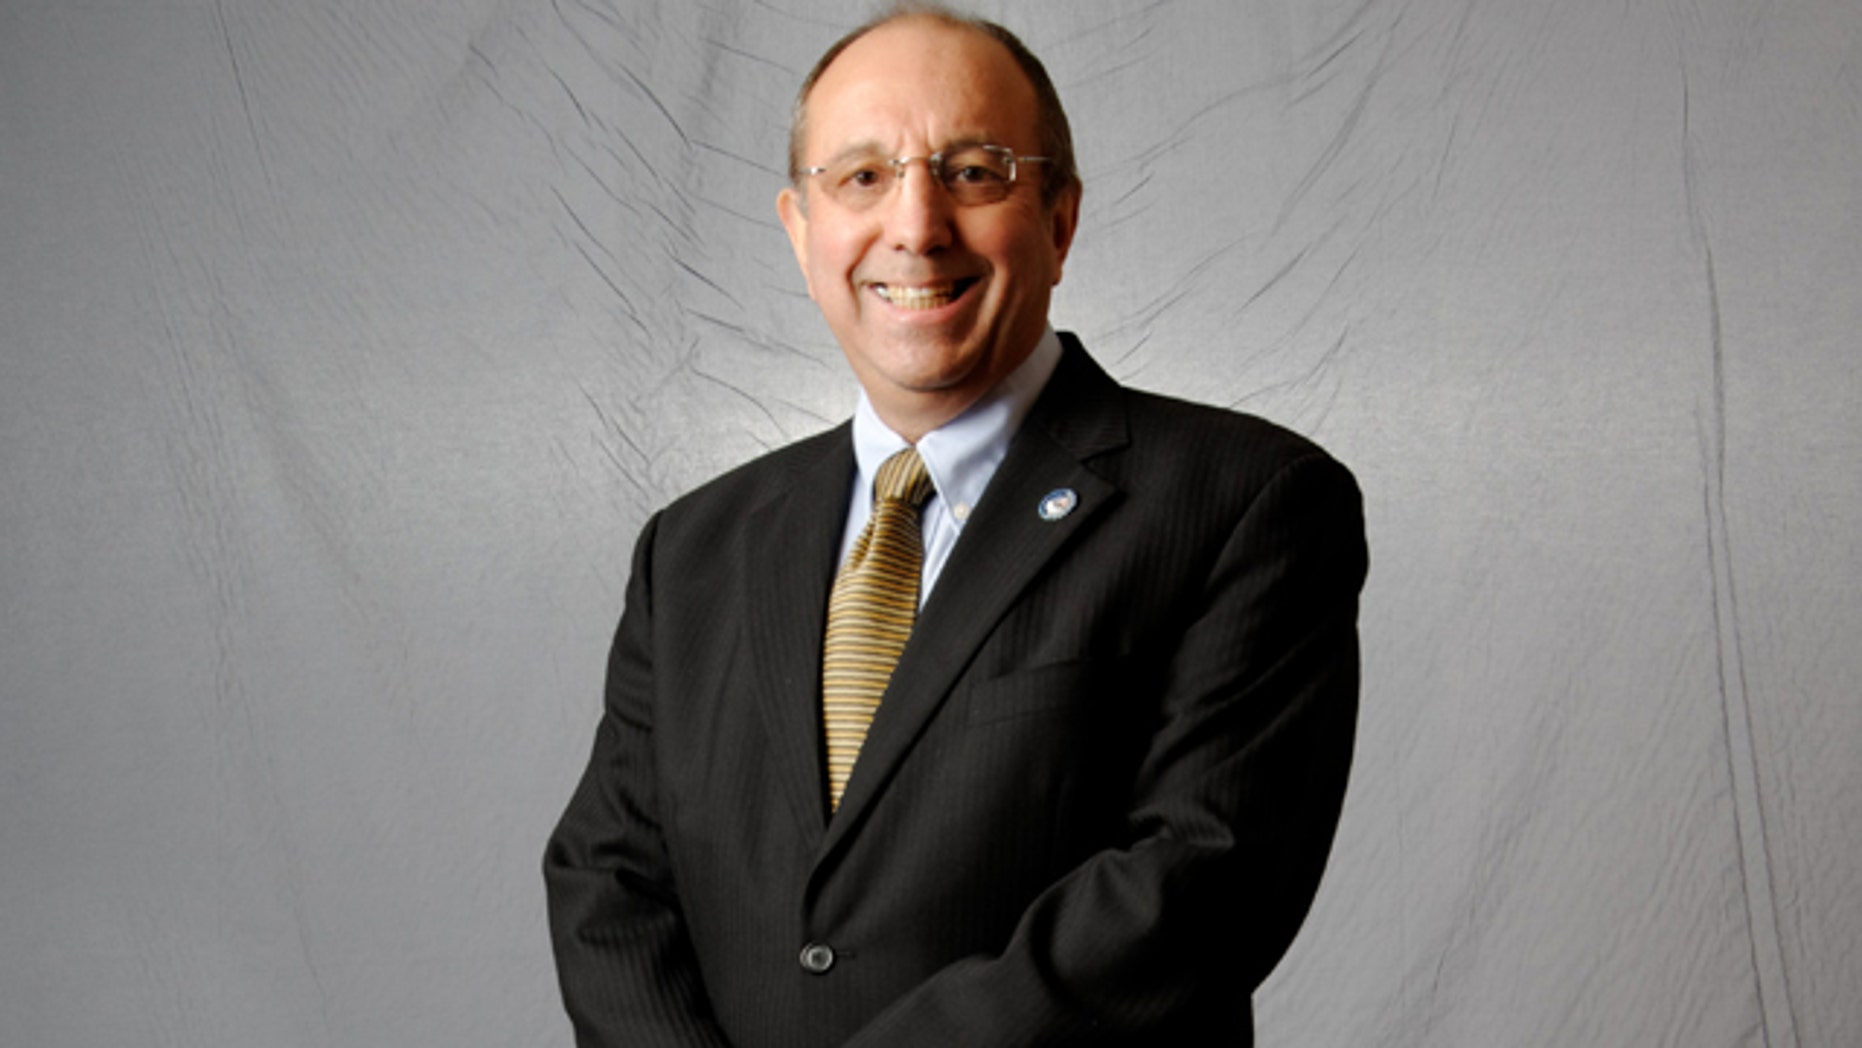 Allan Levene is running for Congress in his home state of Georgia and three other states.